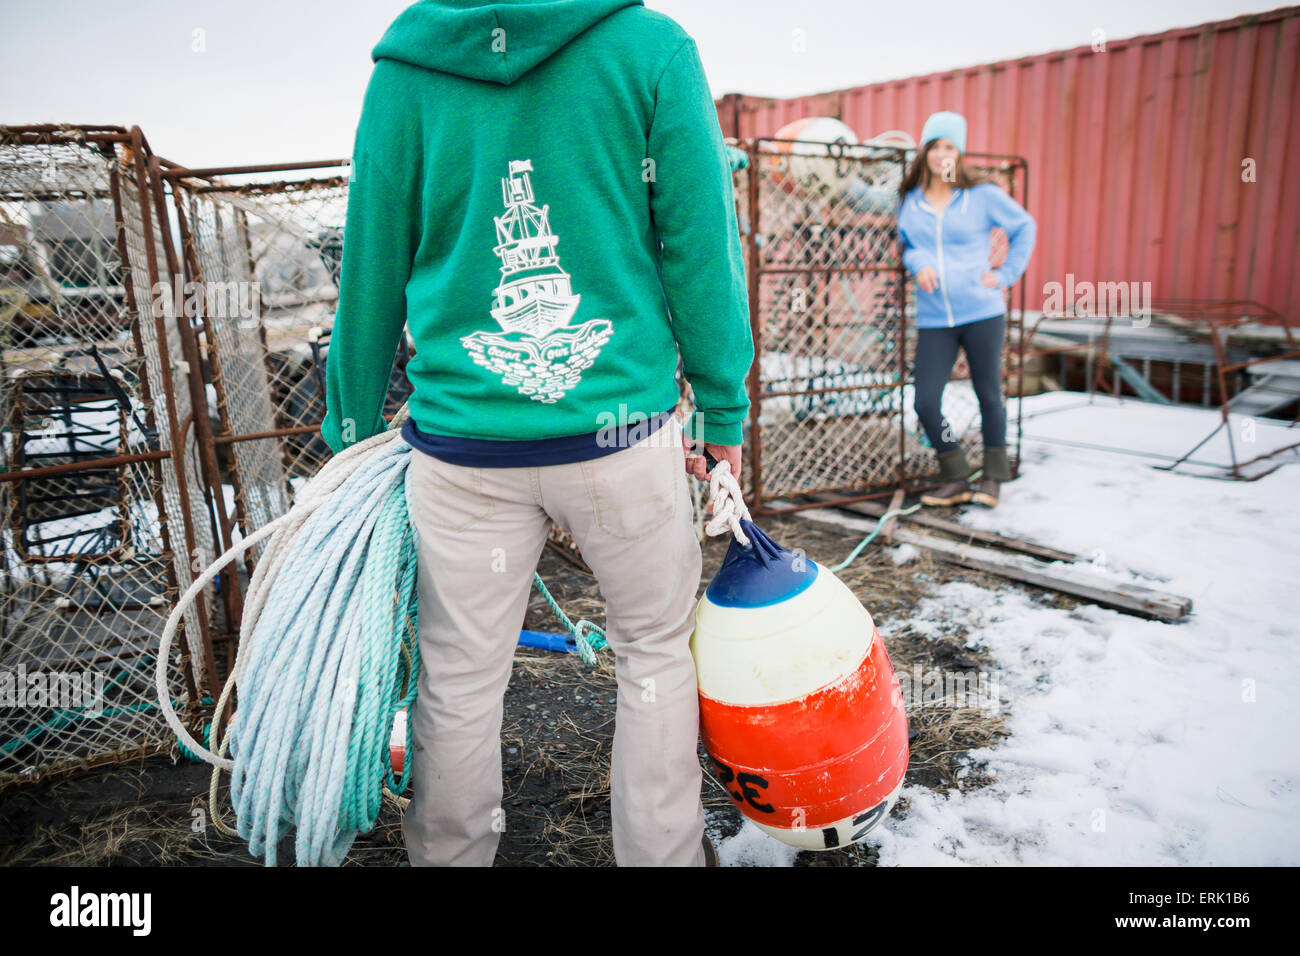 young adults with commercial fishing gear in a boat yard in homer, Reel Combo